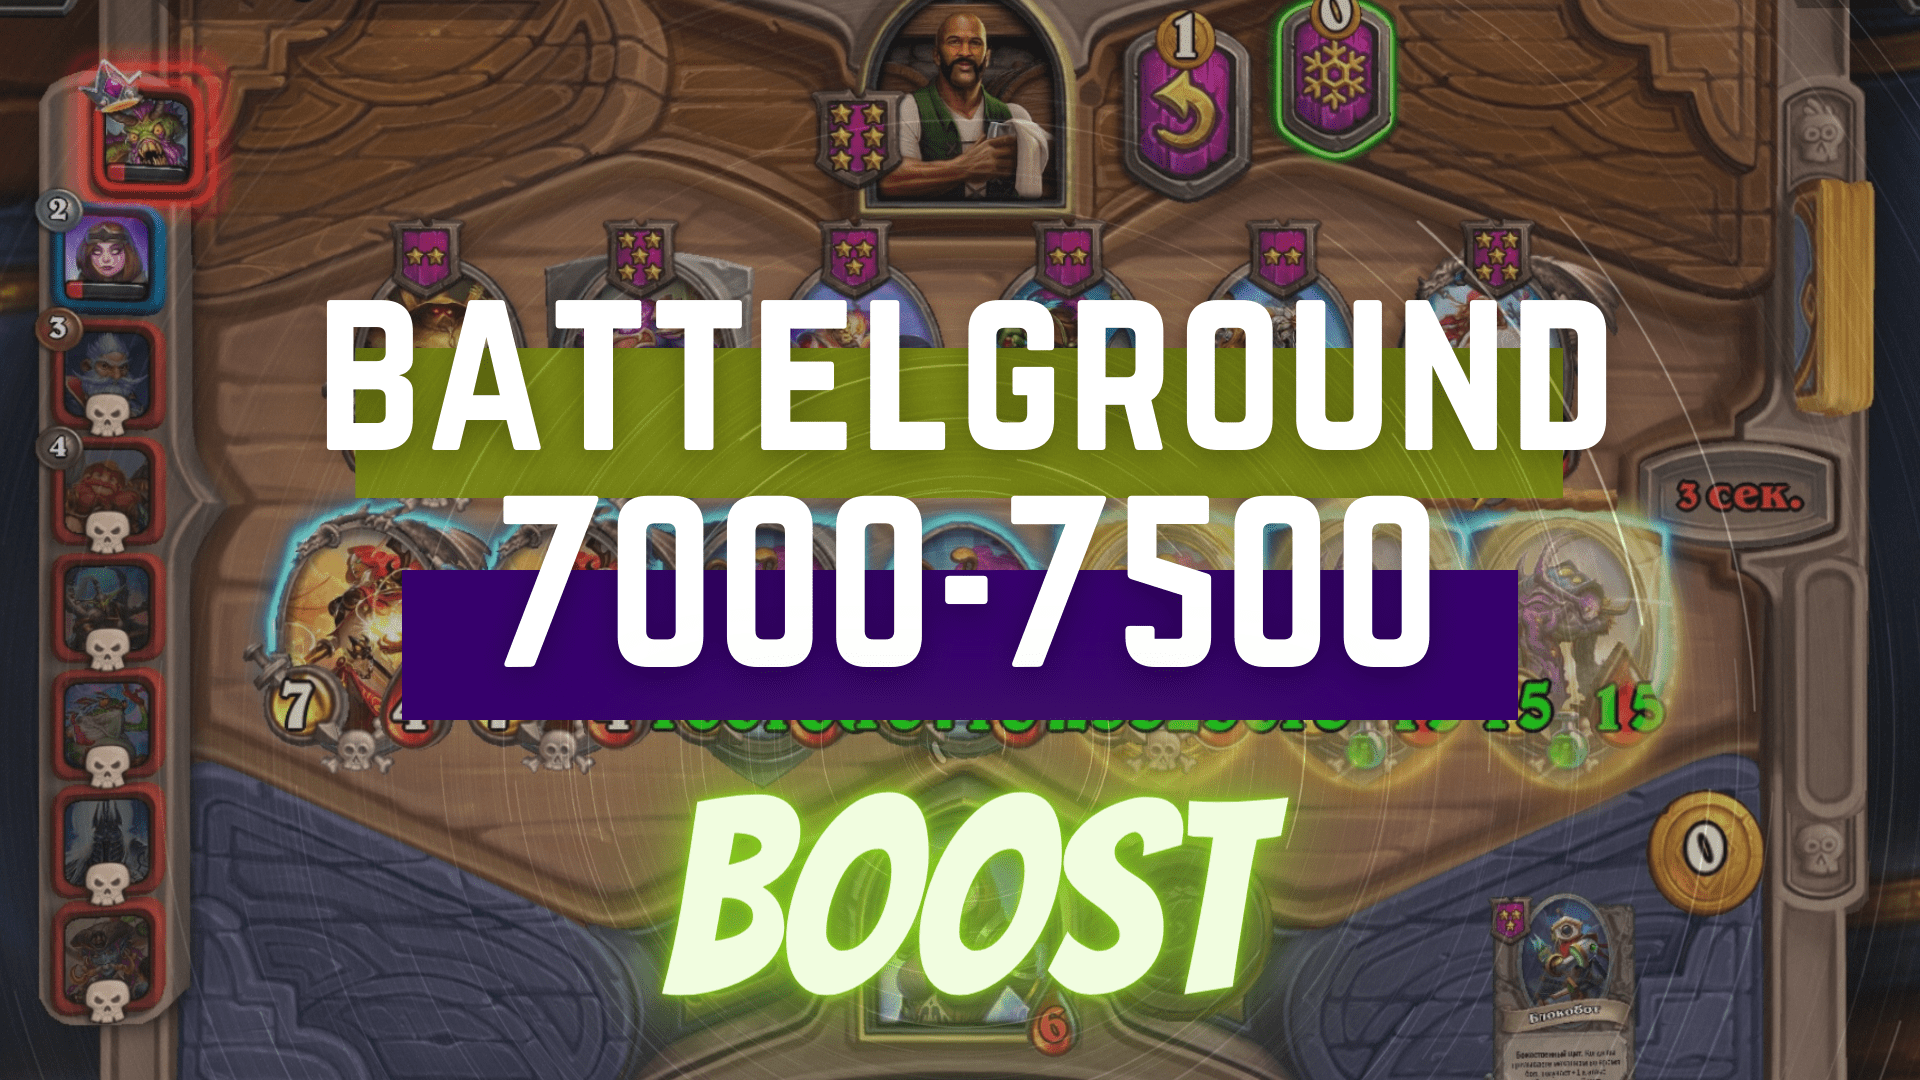 [BATTLEGROUNDS RATING] BOOST FROM 7000 TO 7500 GBD - e2p.com